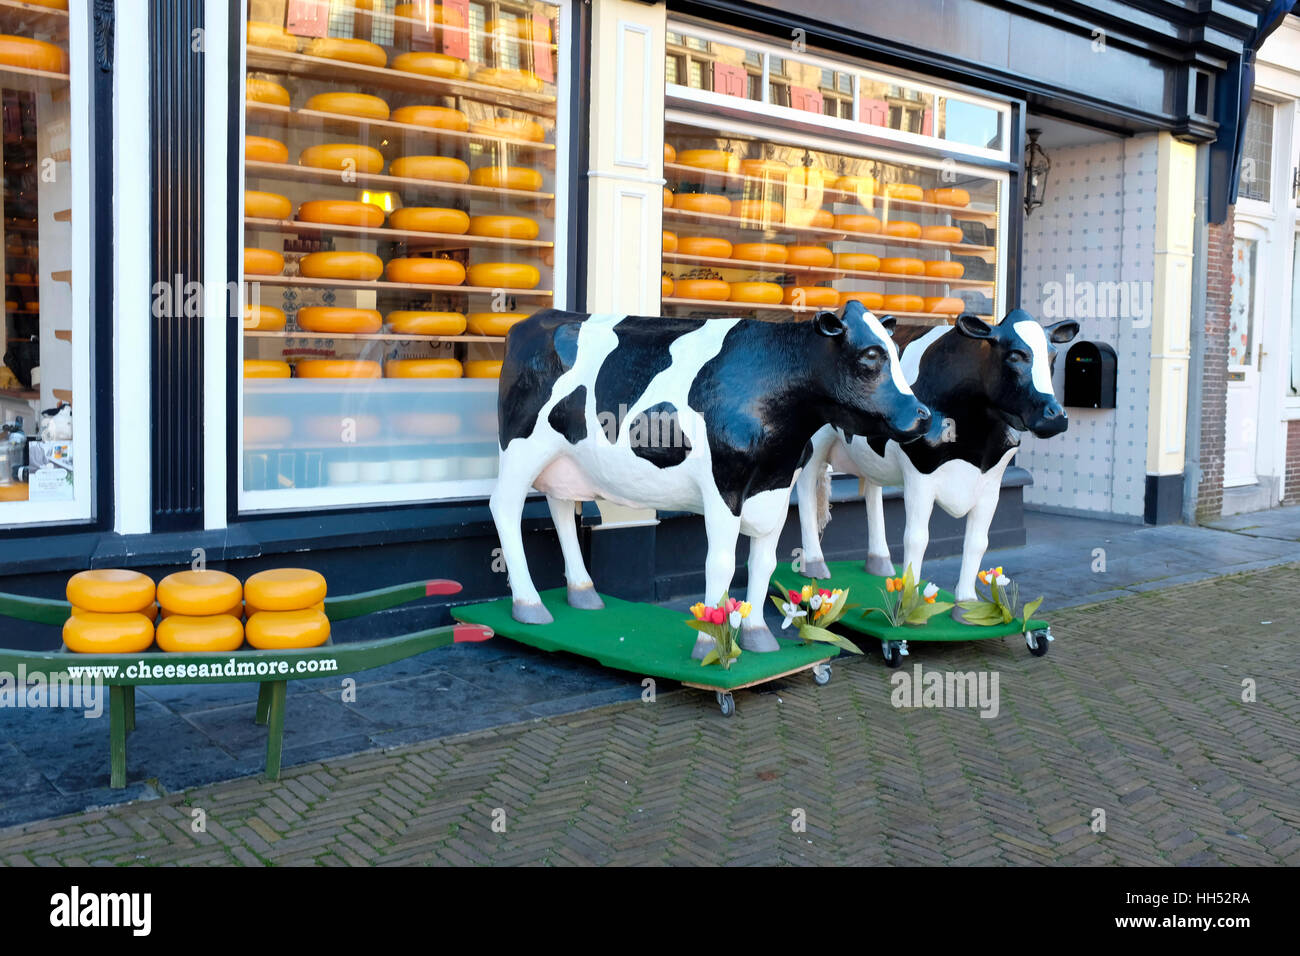 Dutch Cheese Shop, City of Delft, Netherlands. - Stock Image